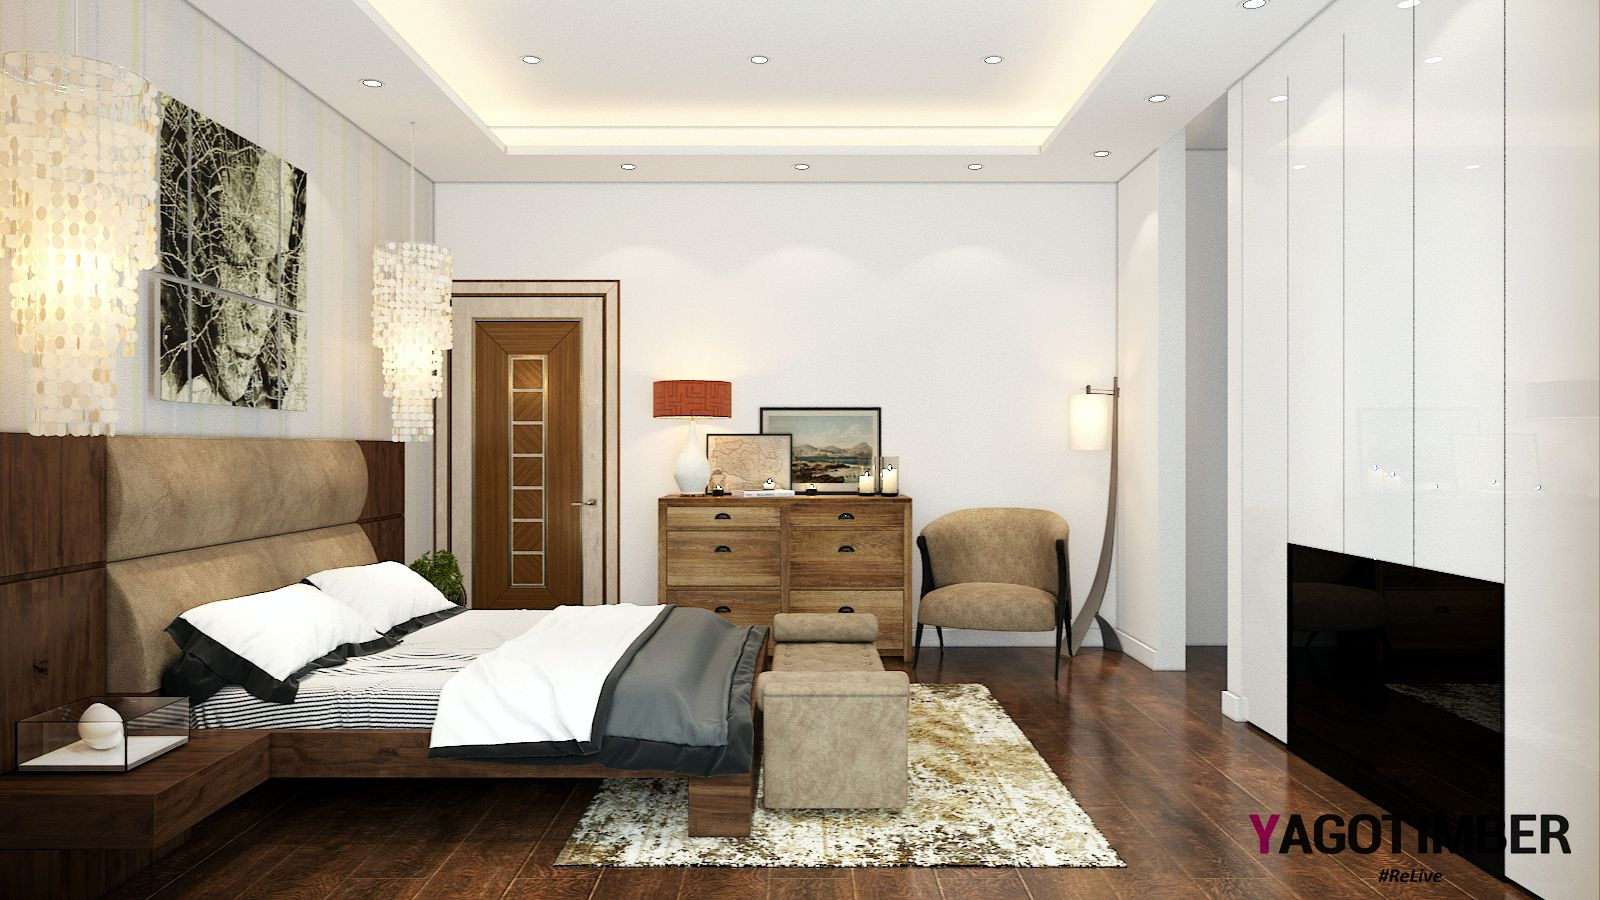 Designing Bedroom Yagotimber Presents A Modern #bedroom Design Look For Your Dream